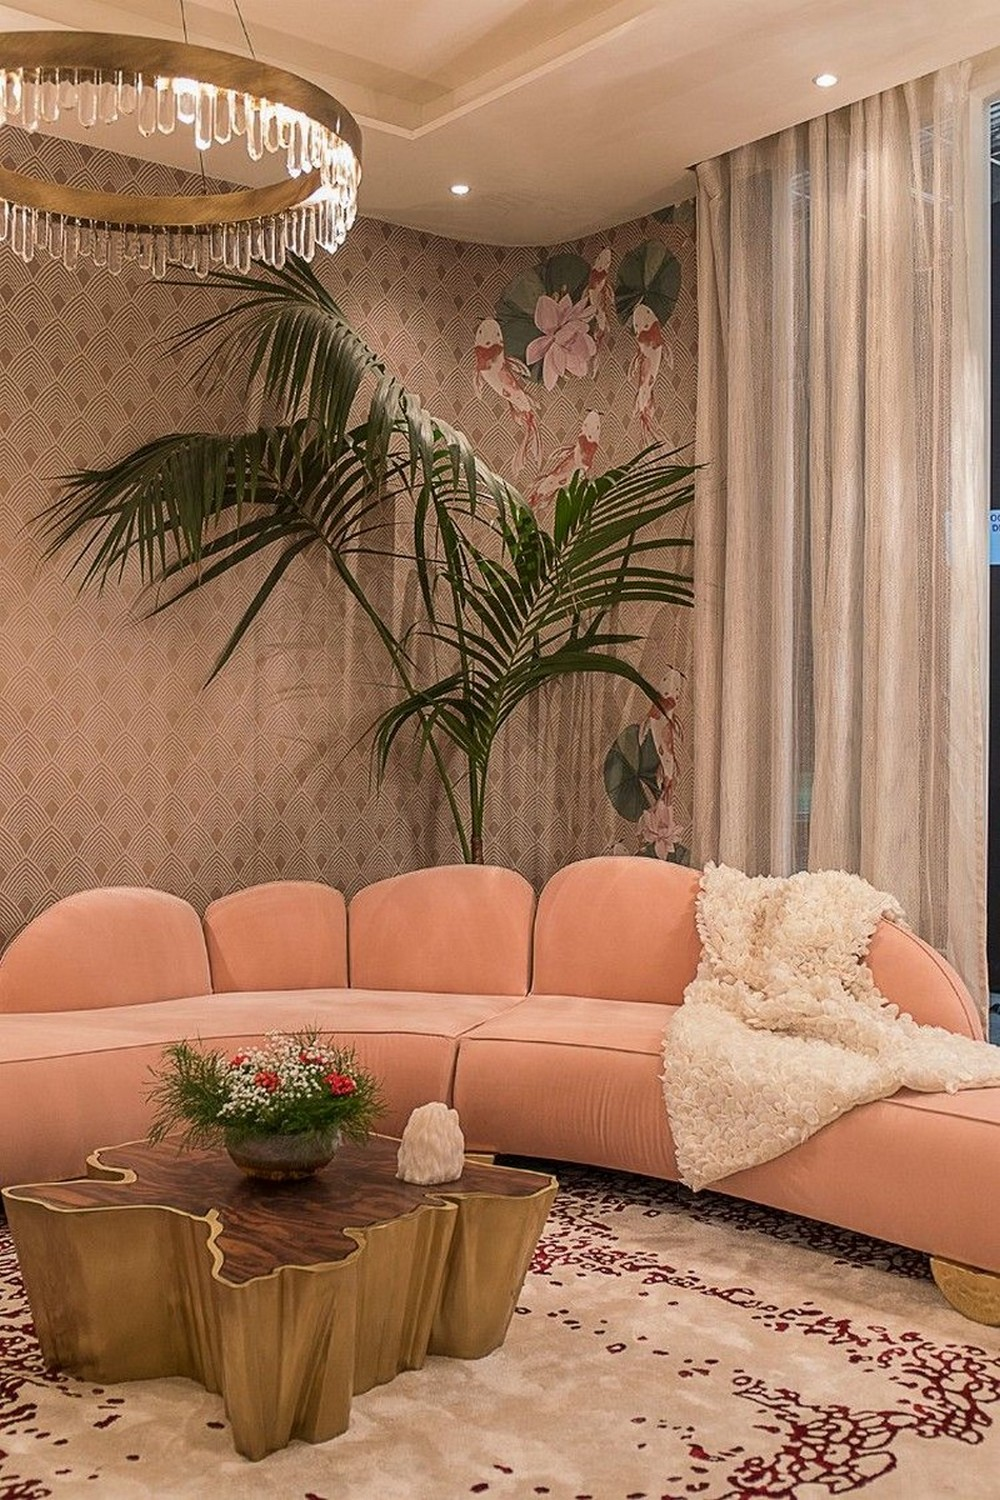 See The 2019 Interior Design Trends In These High-Quality Products